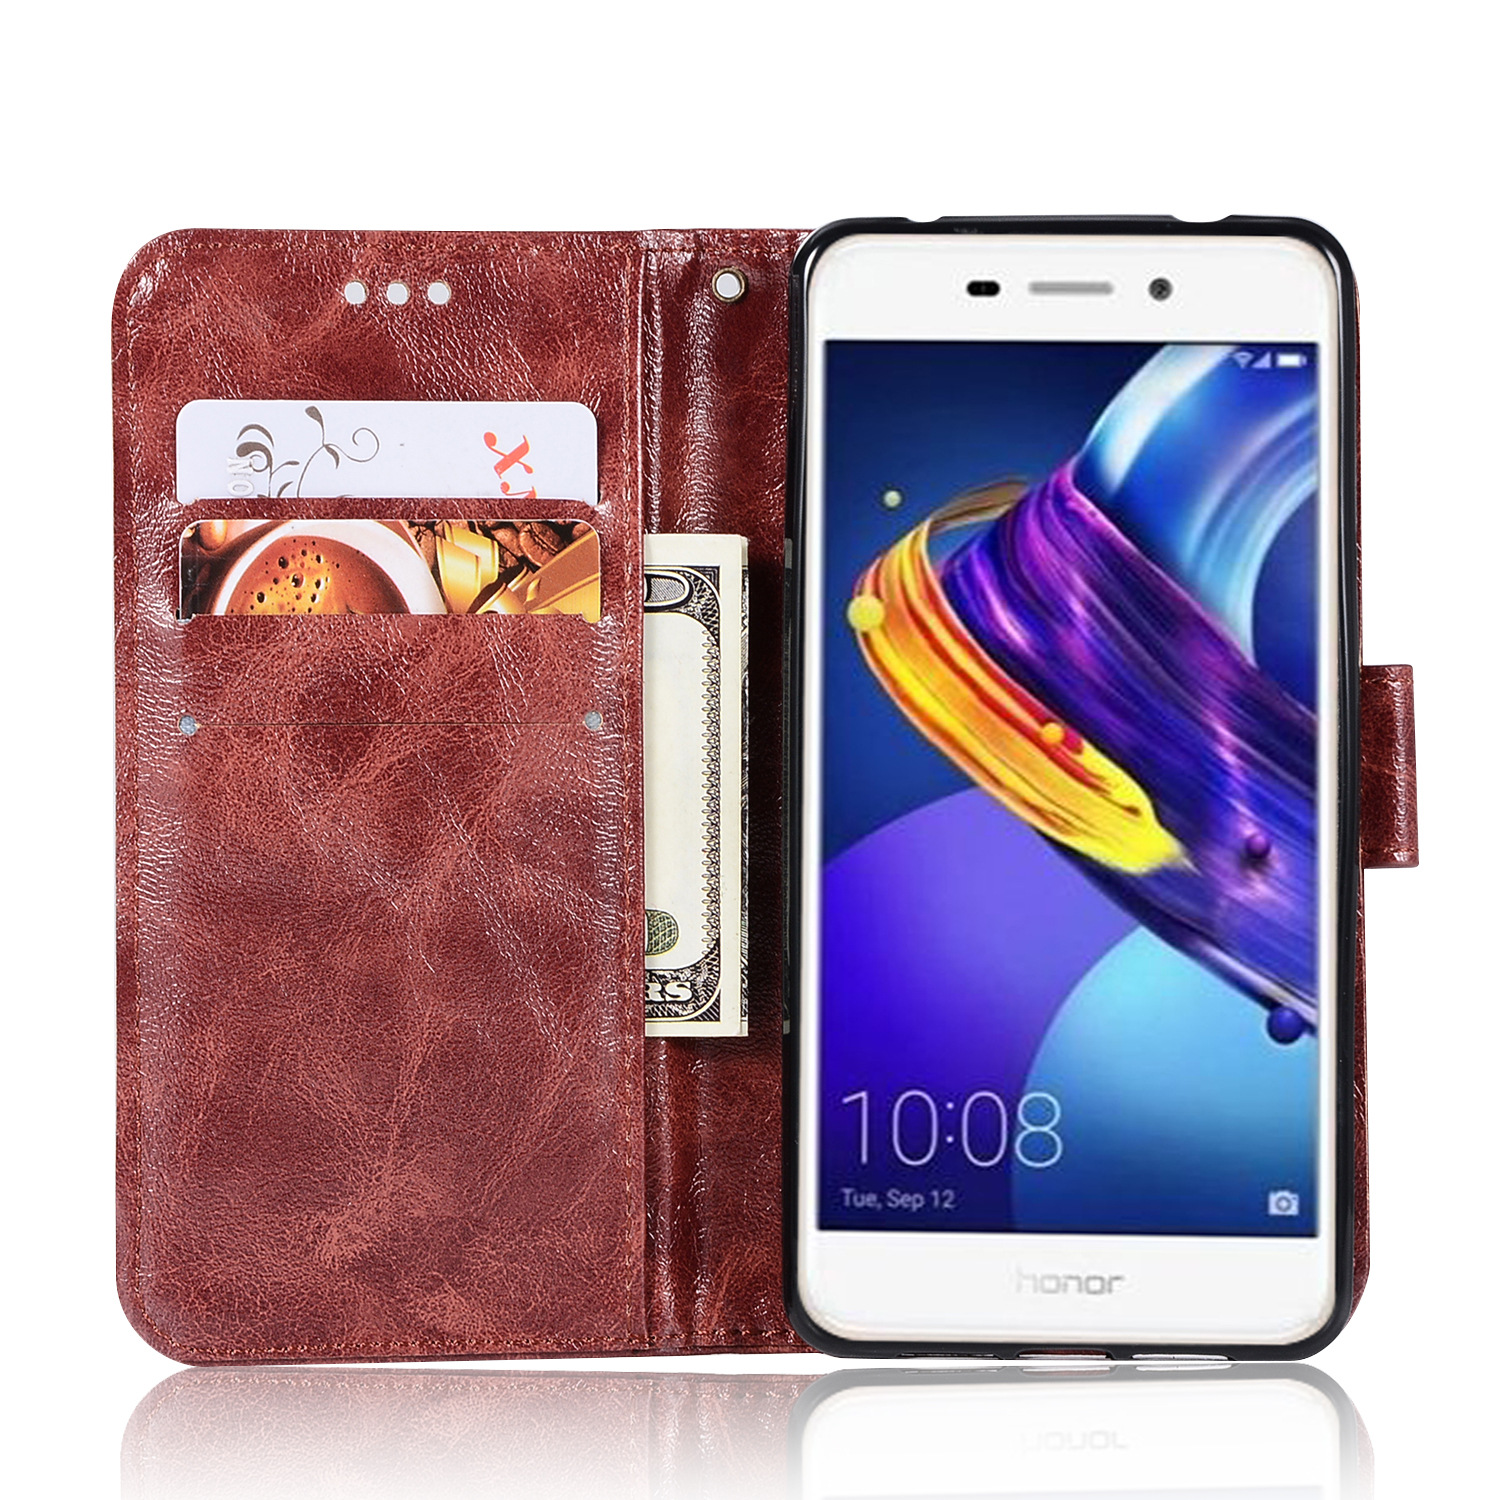 Image 5 - 20PCS Retro Business Cases Wallet For Huawei Honor 6C Pro Case Retro Flip Book Leather Cover For Huawei 6C Pro Phone Protector-in Wallet Cases from Cellphones & Telecommunications